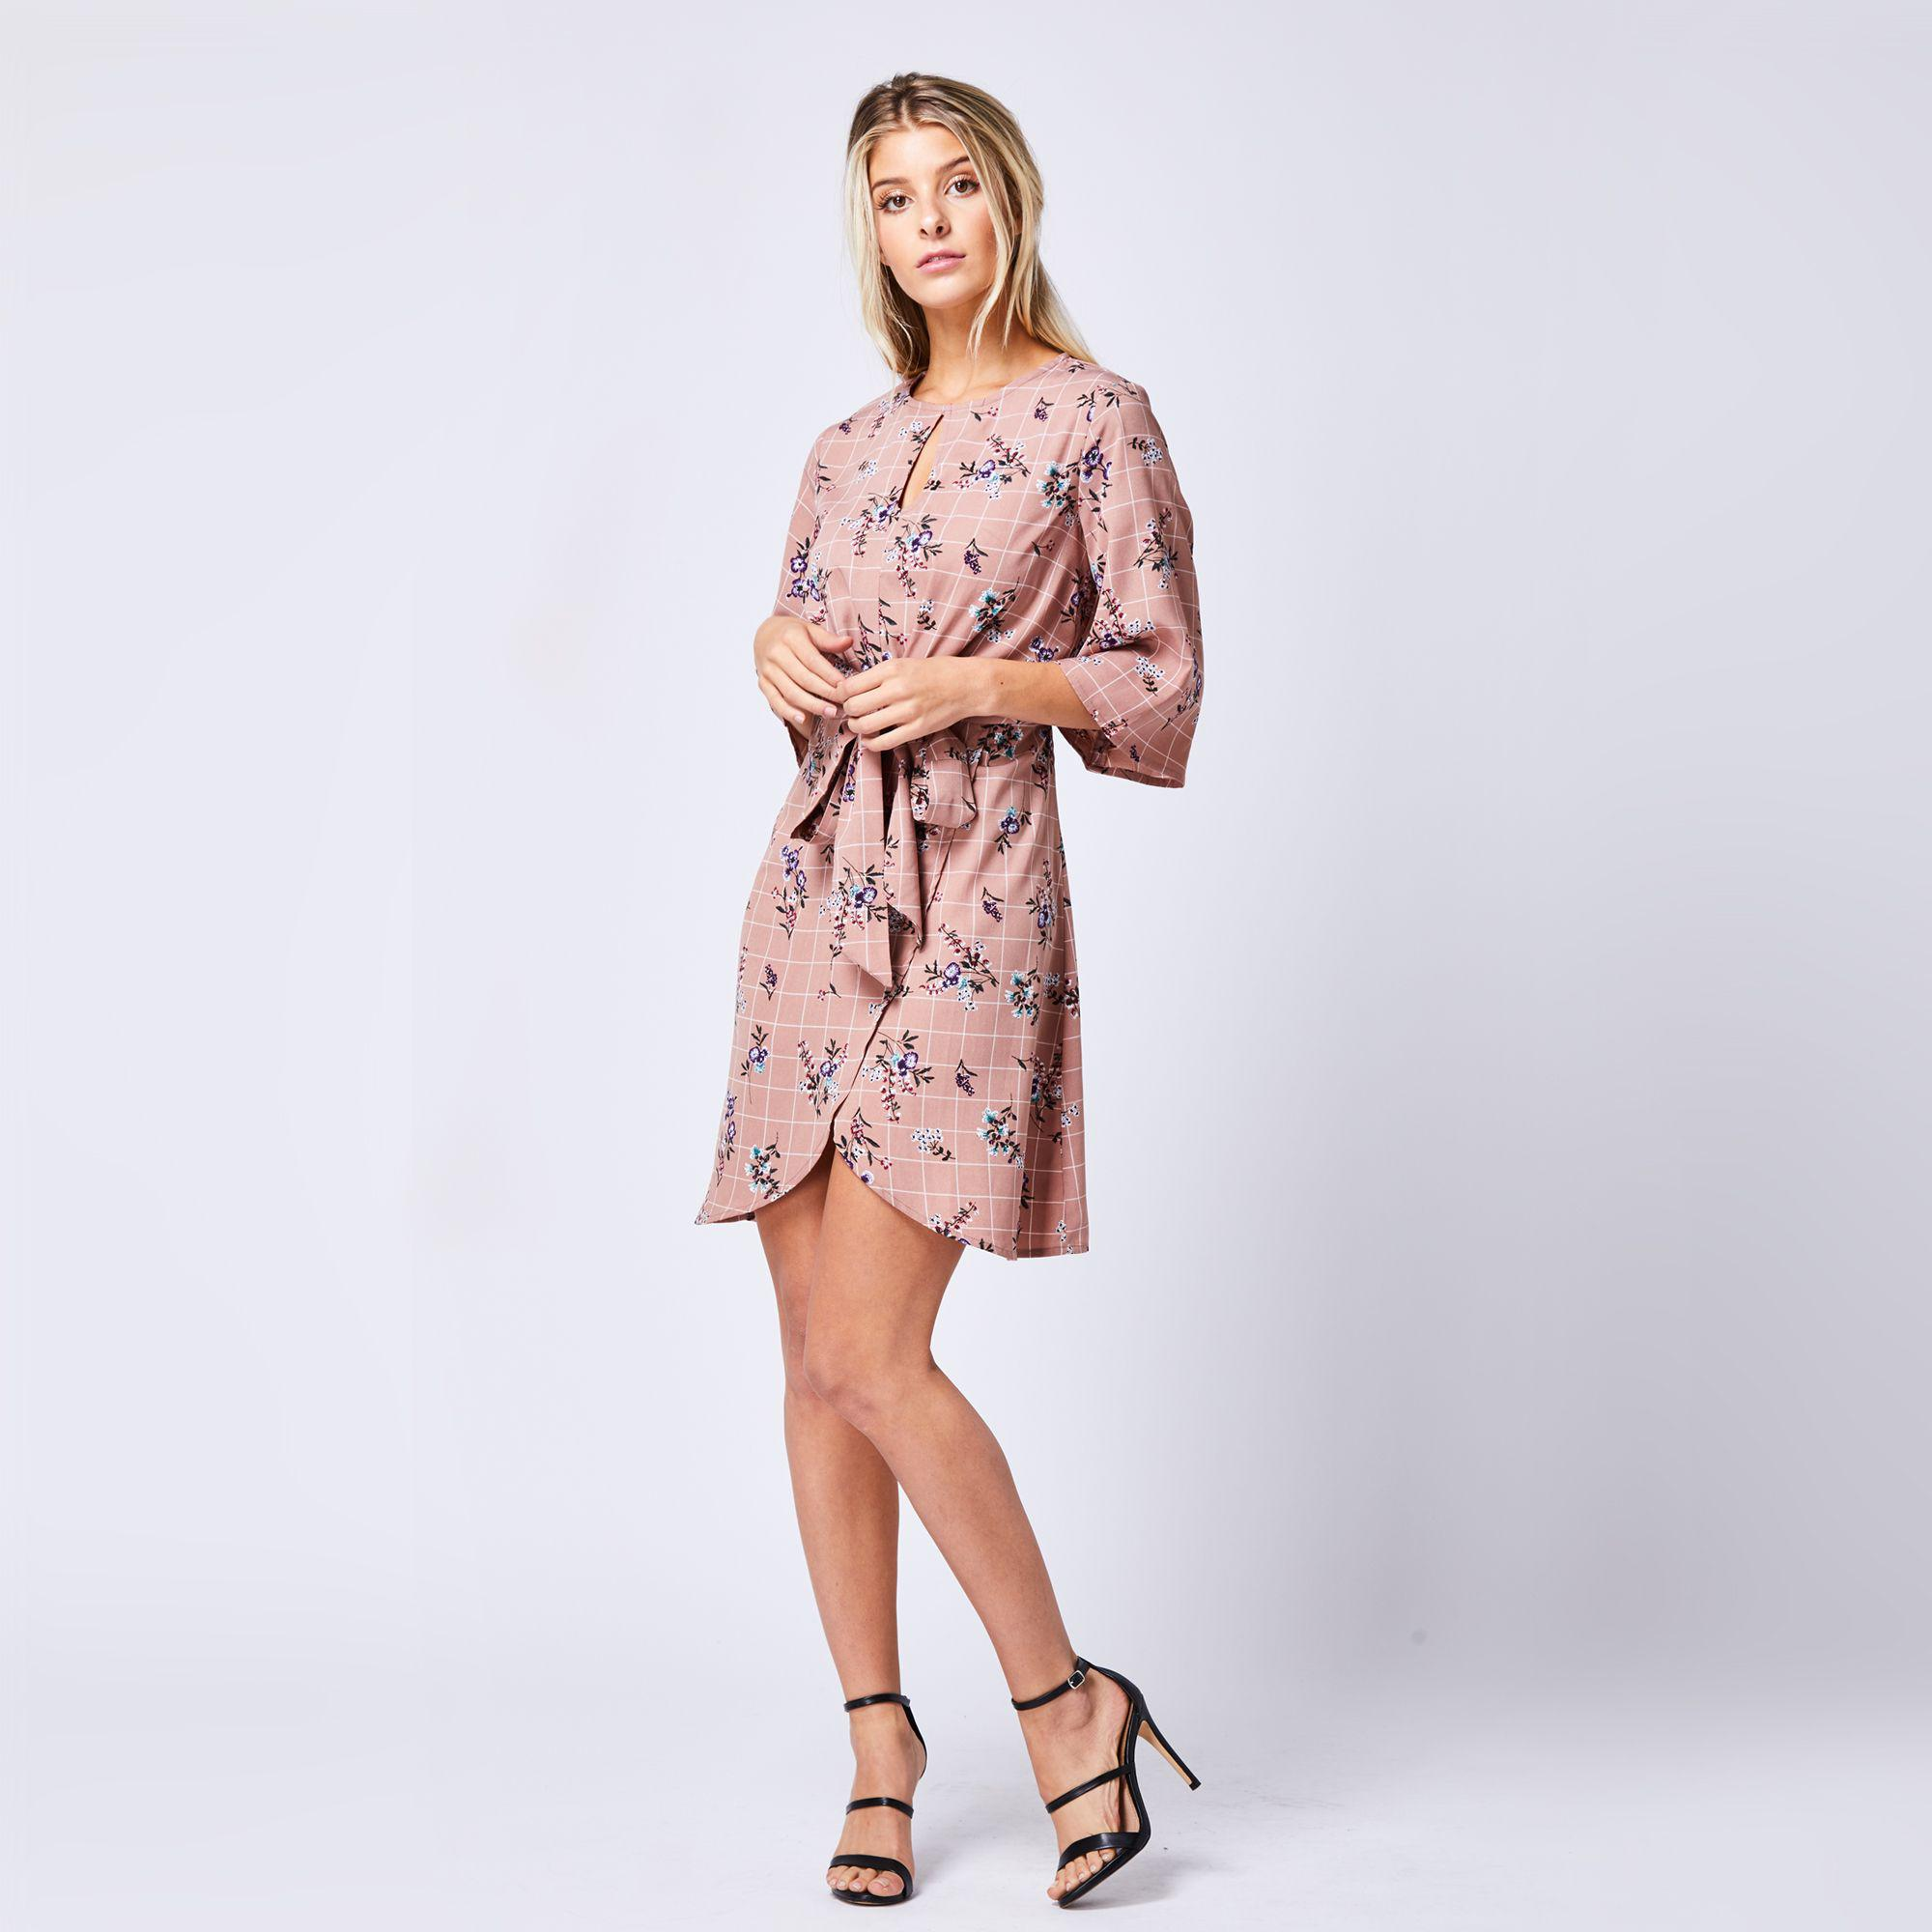 4d6cba4c191e Angeleye Nude Floaty Printed Floral Wrap Dress - Lyst